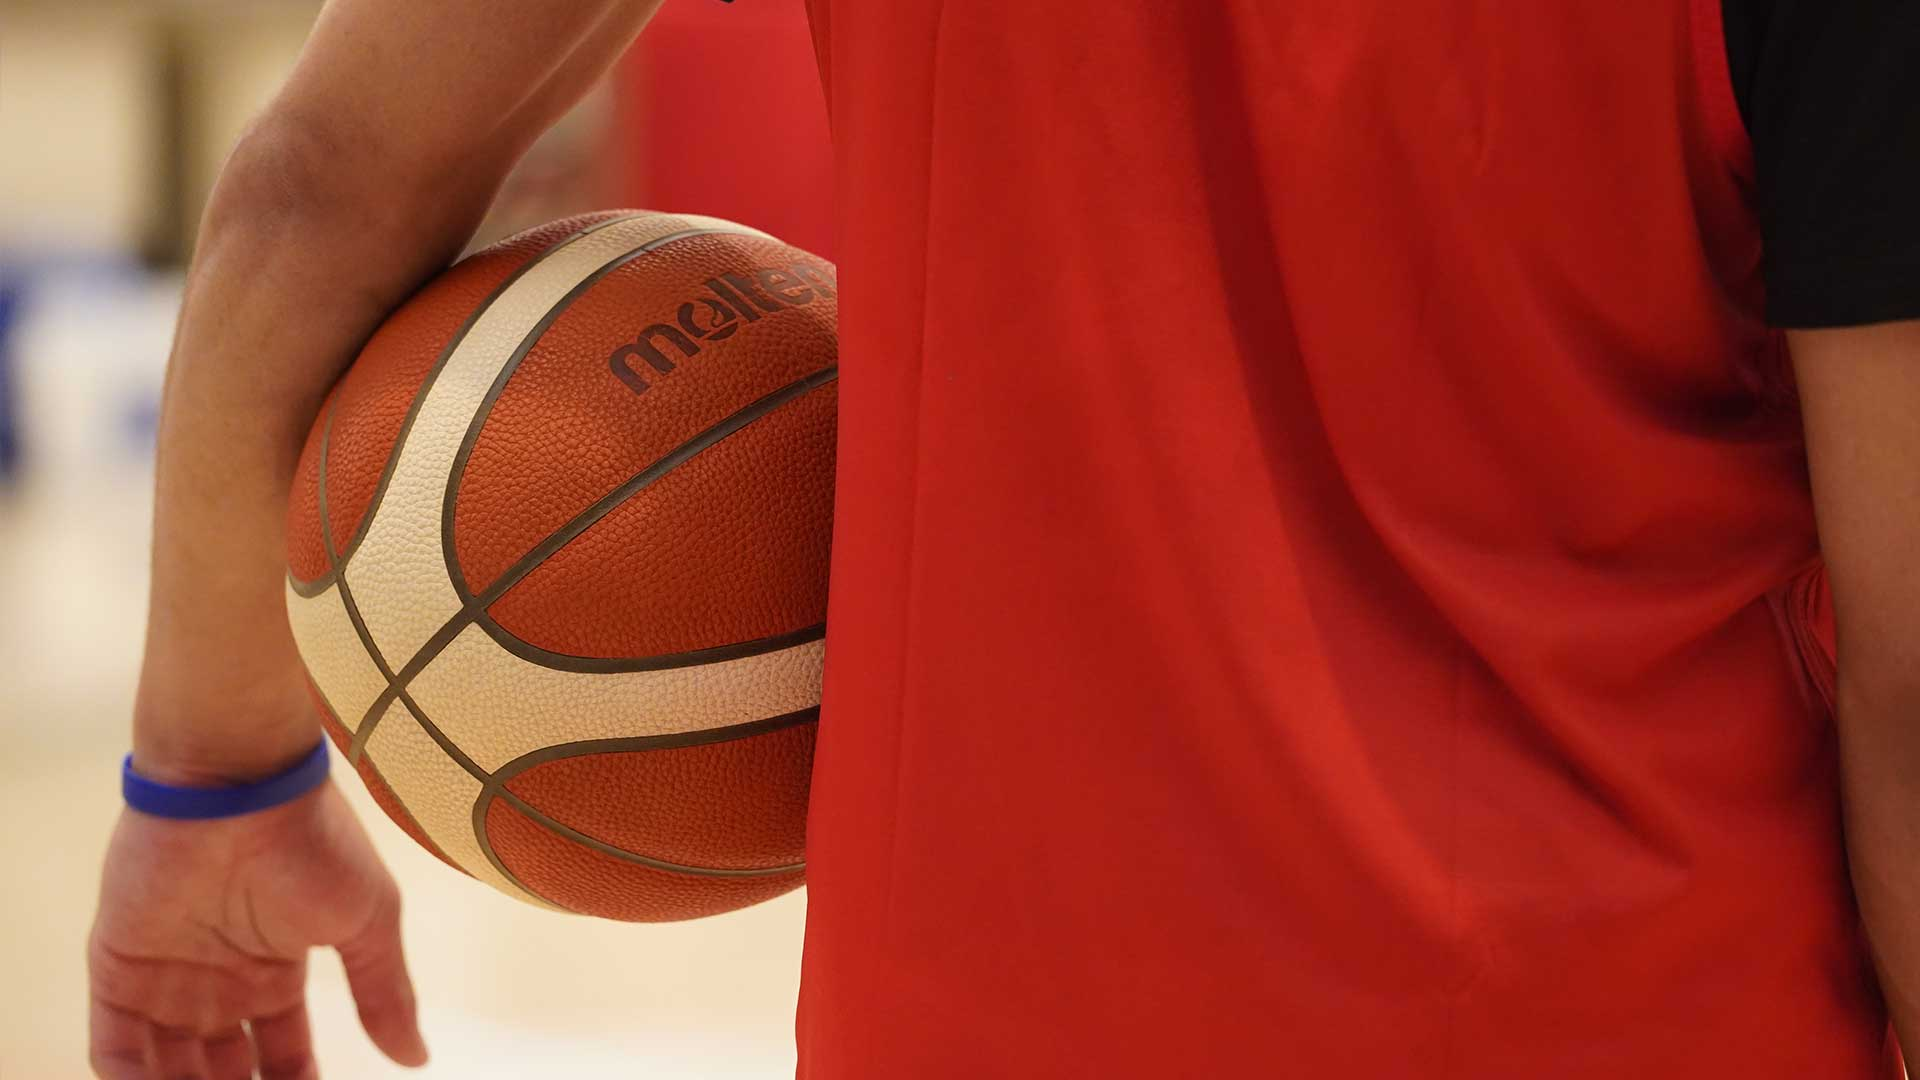 19 athletes participating in Senior Men's National Team camp ahead of FIBA Olympic Qualifying Tournament